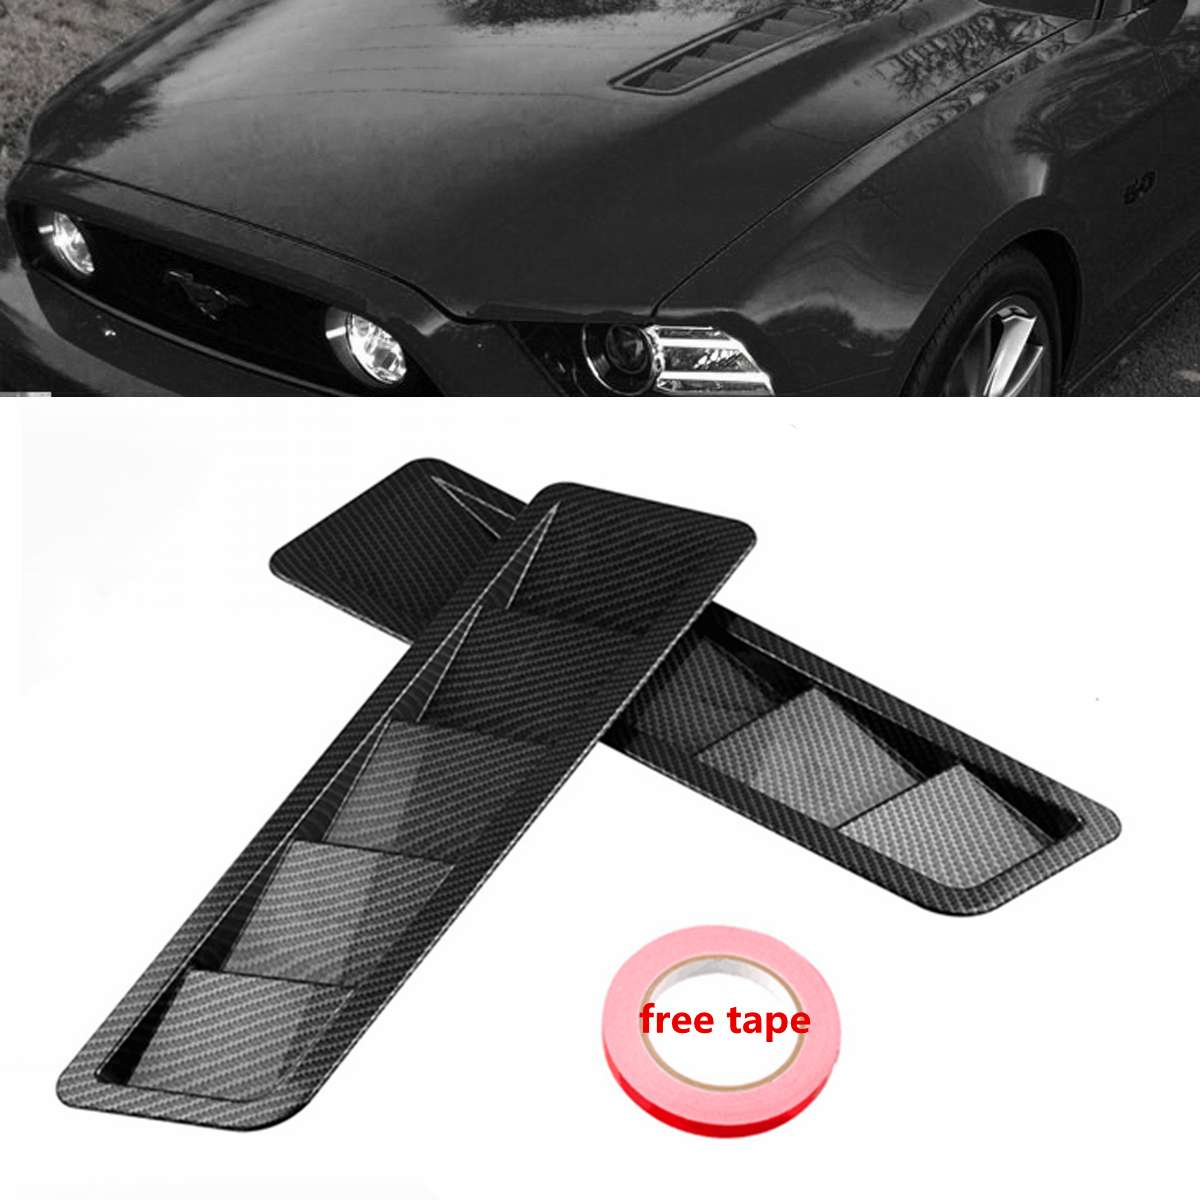 2x Universal Car Hood Vent Louver Scoop Cover Air-Flow Intake Cooling Panel Trim